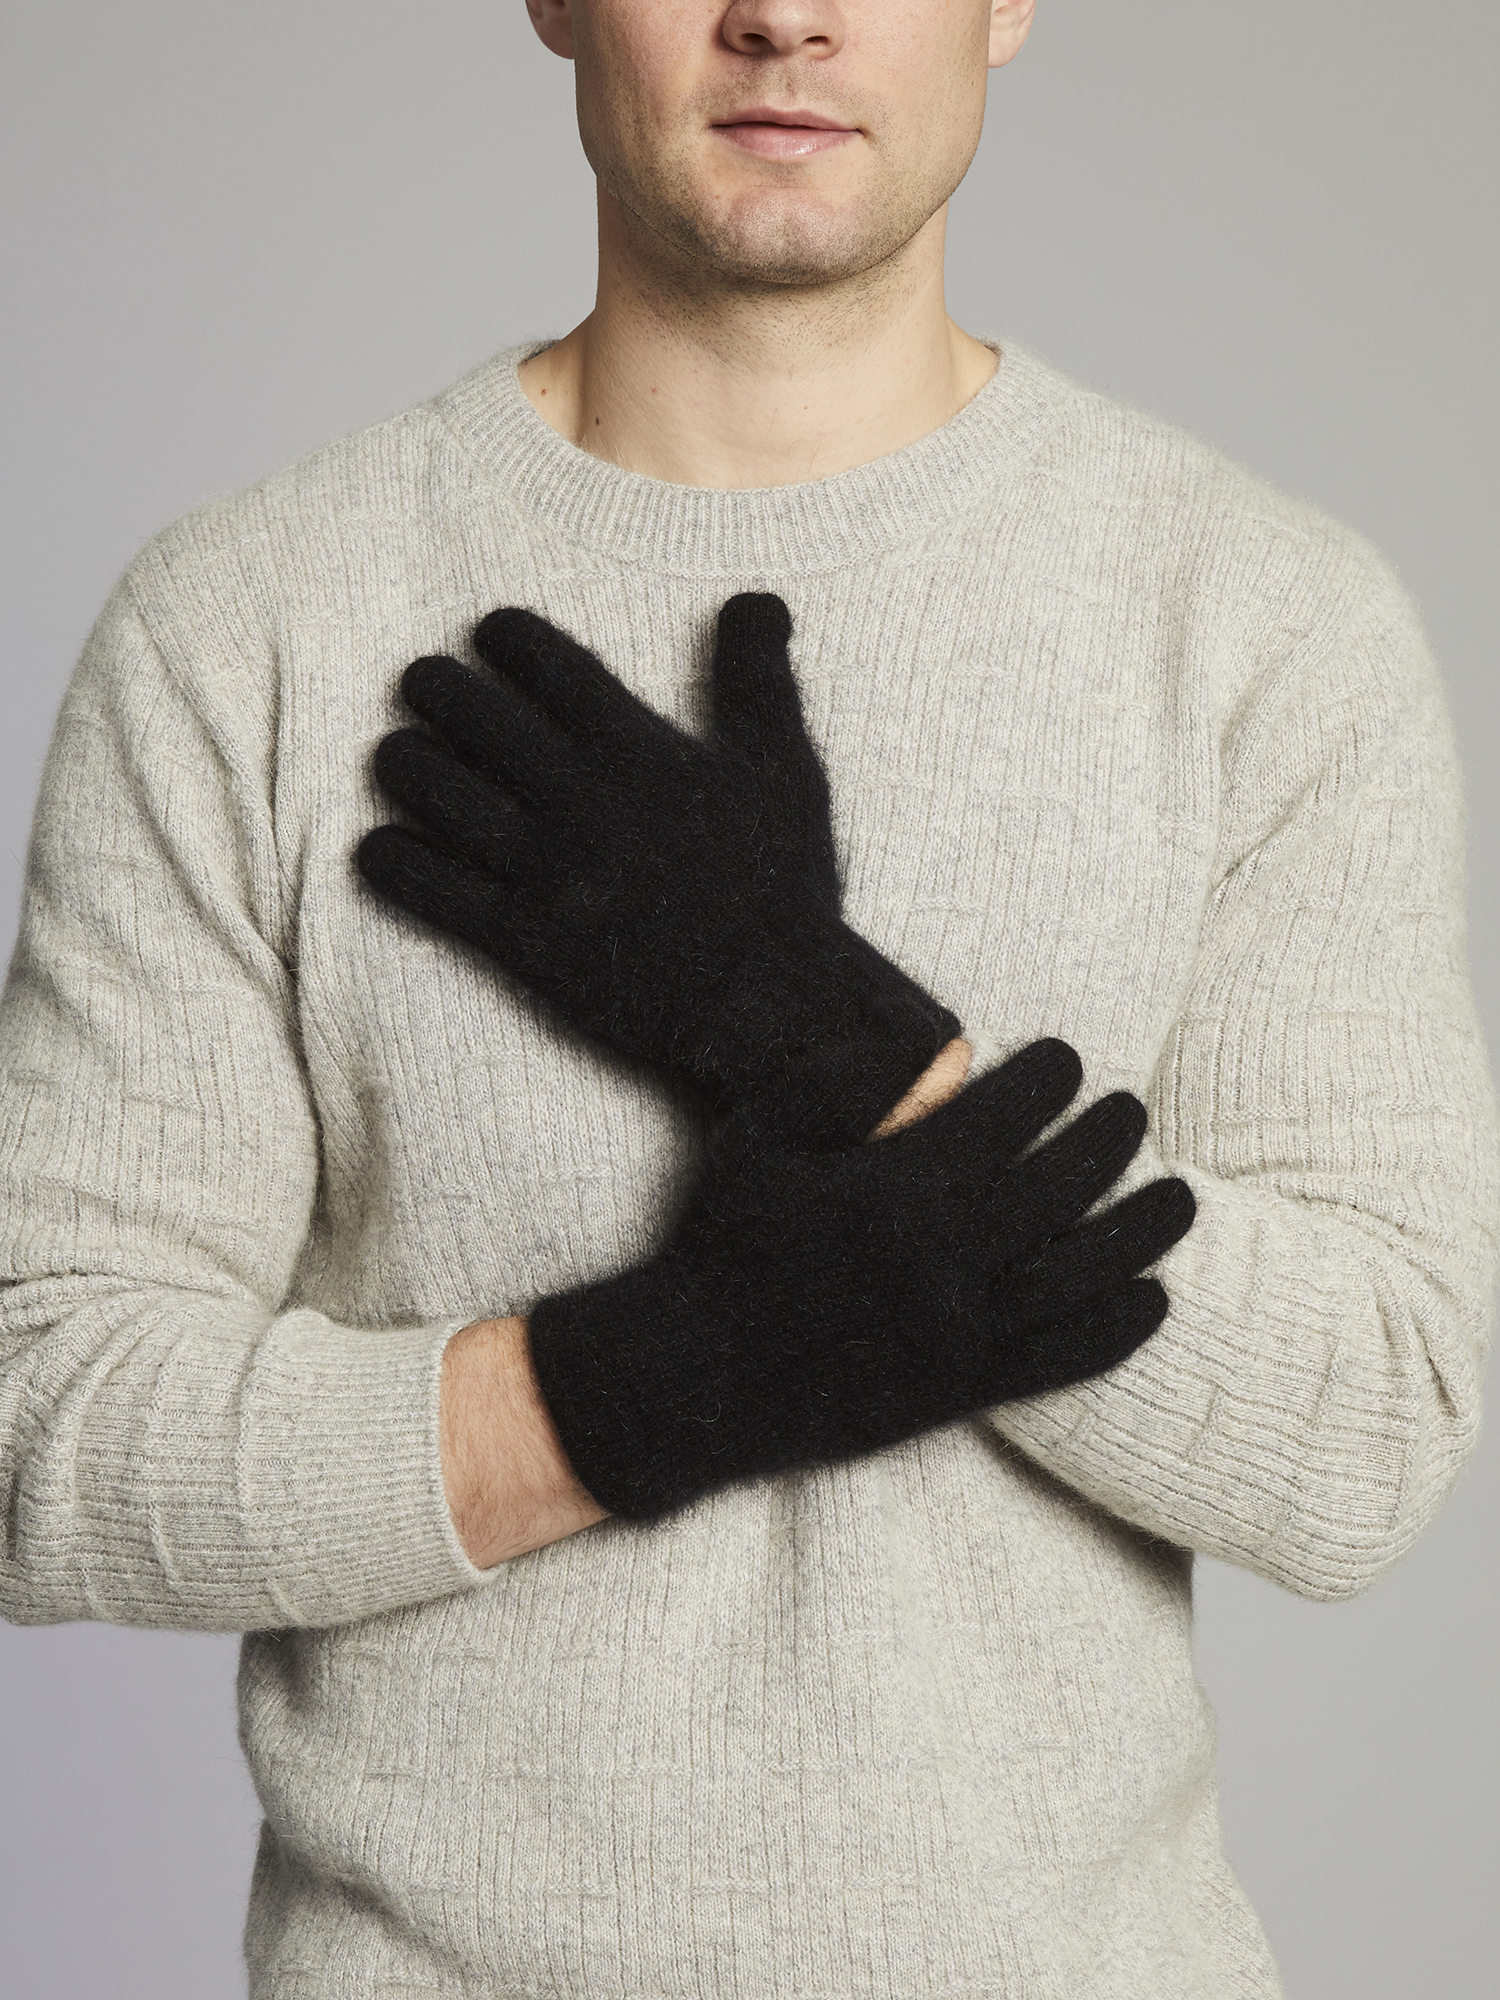 Merino / Possum Standard Glove - Black